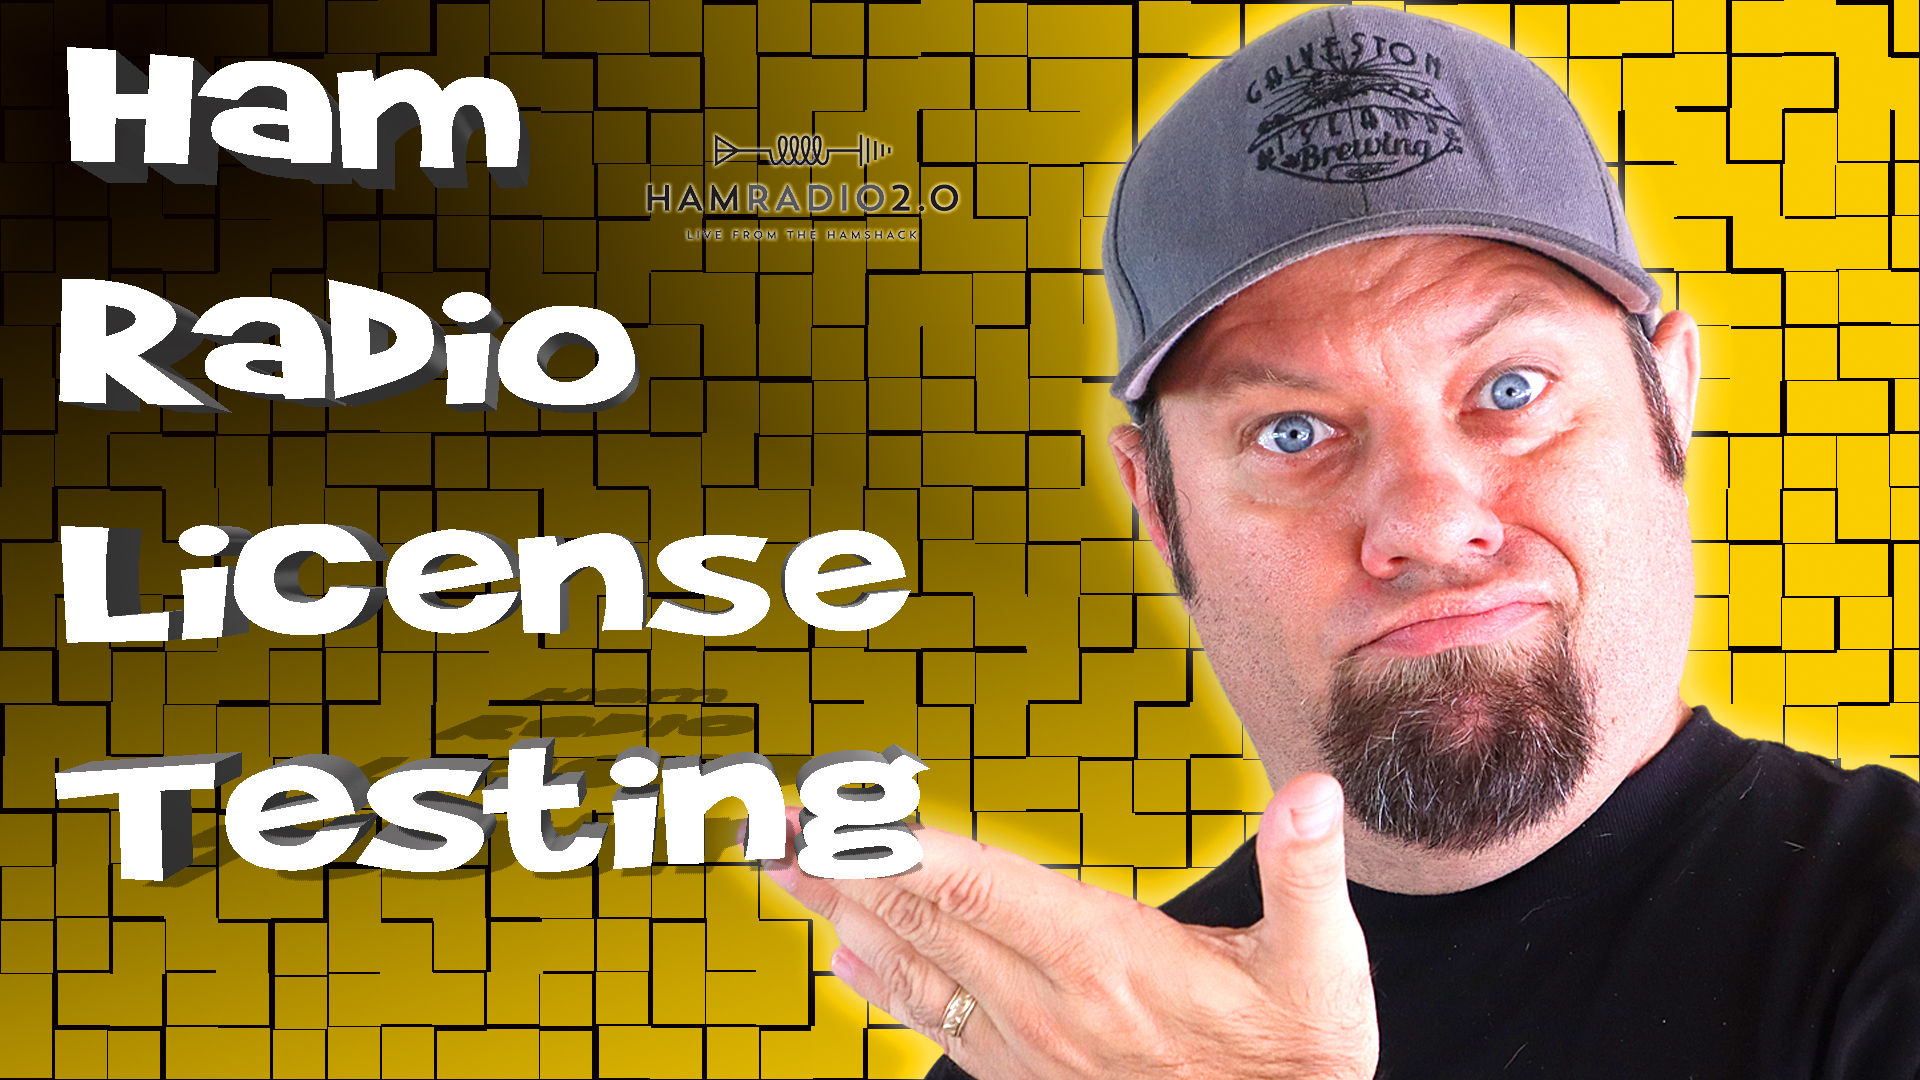 Episode 450: 8 Places To Take Your Ham Radio License Test TODAY! – Ham Radio Online and In-Person Testing